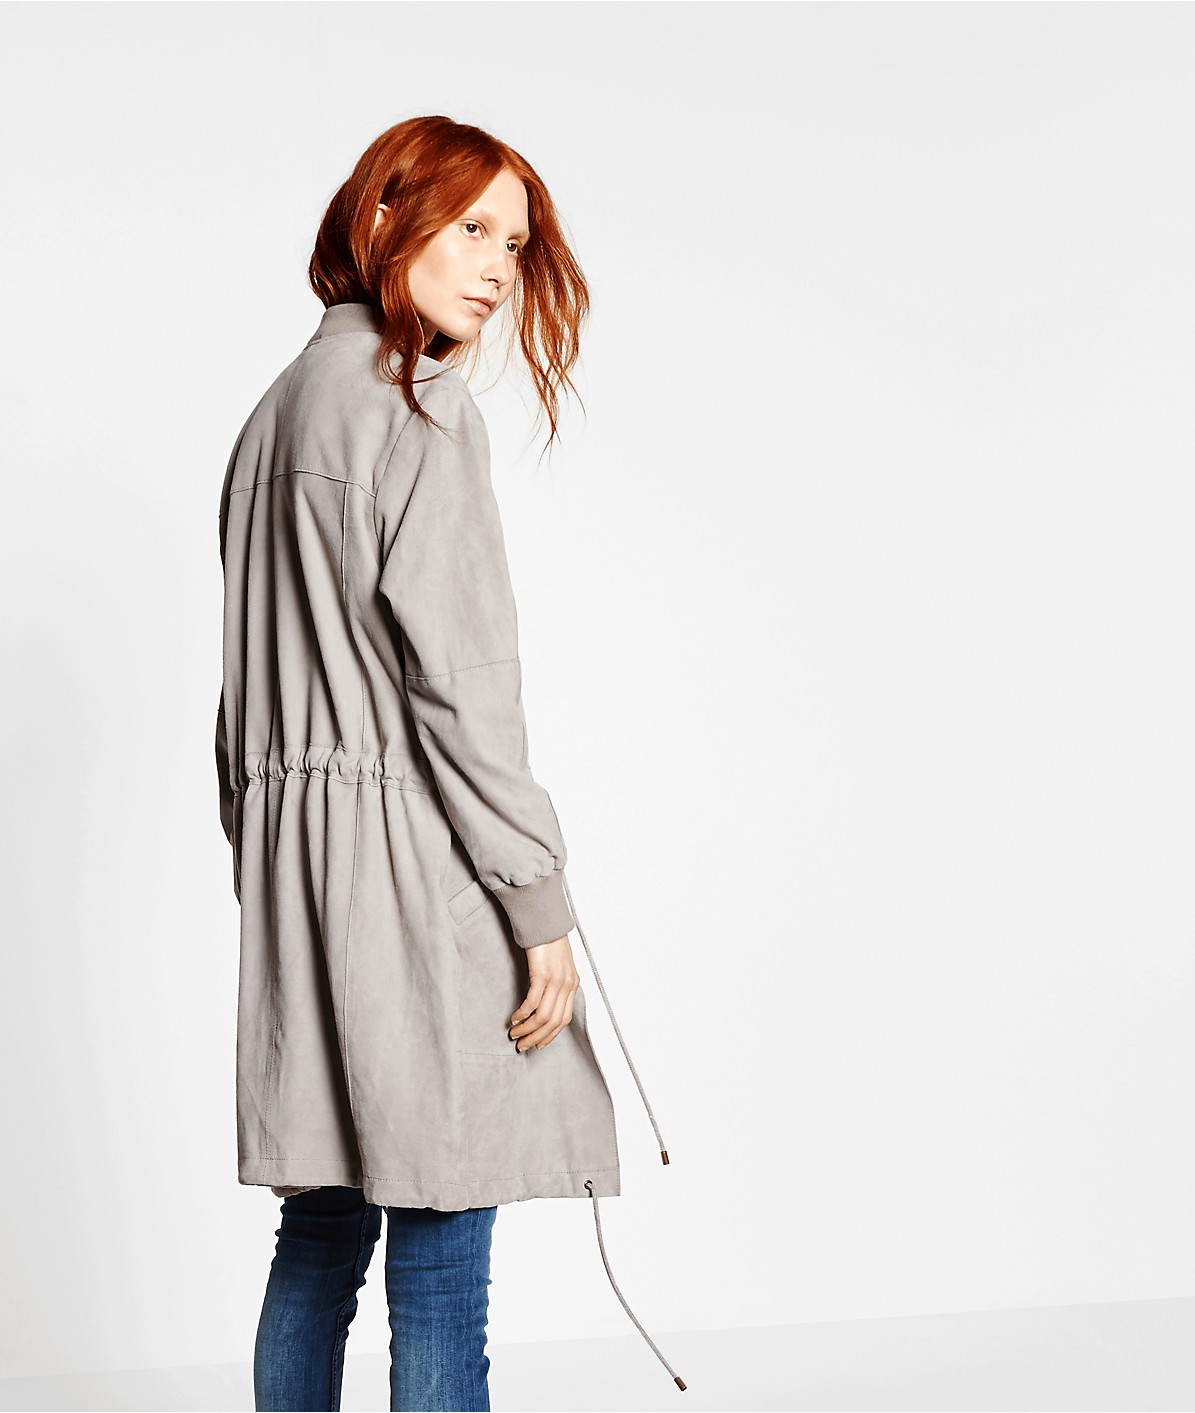 Leather coat F2175500 from liebeskind